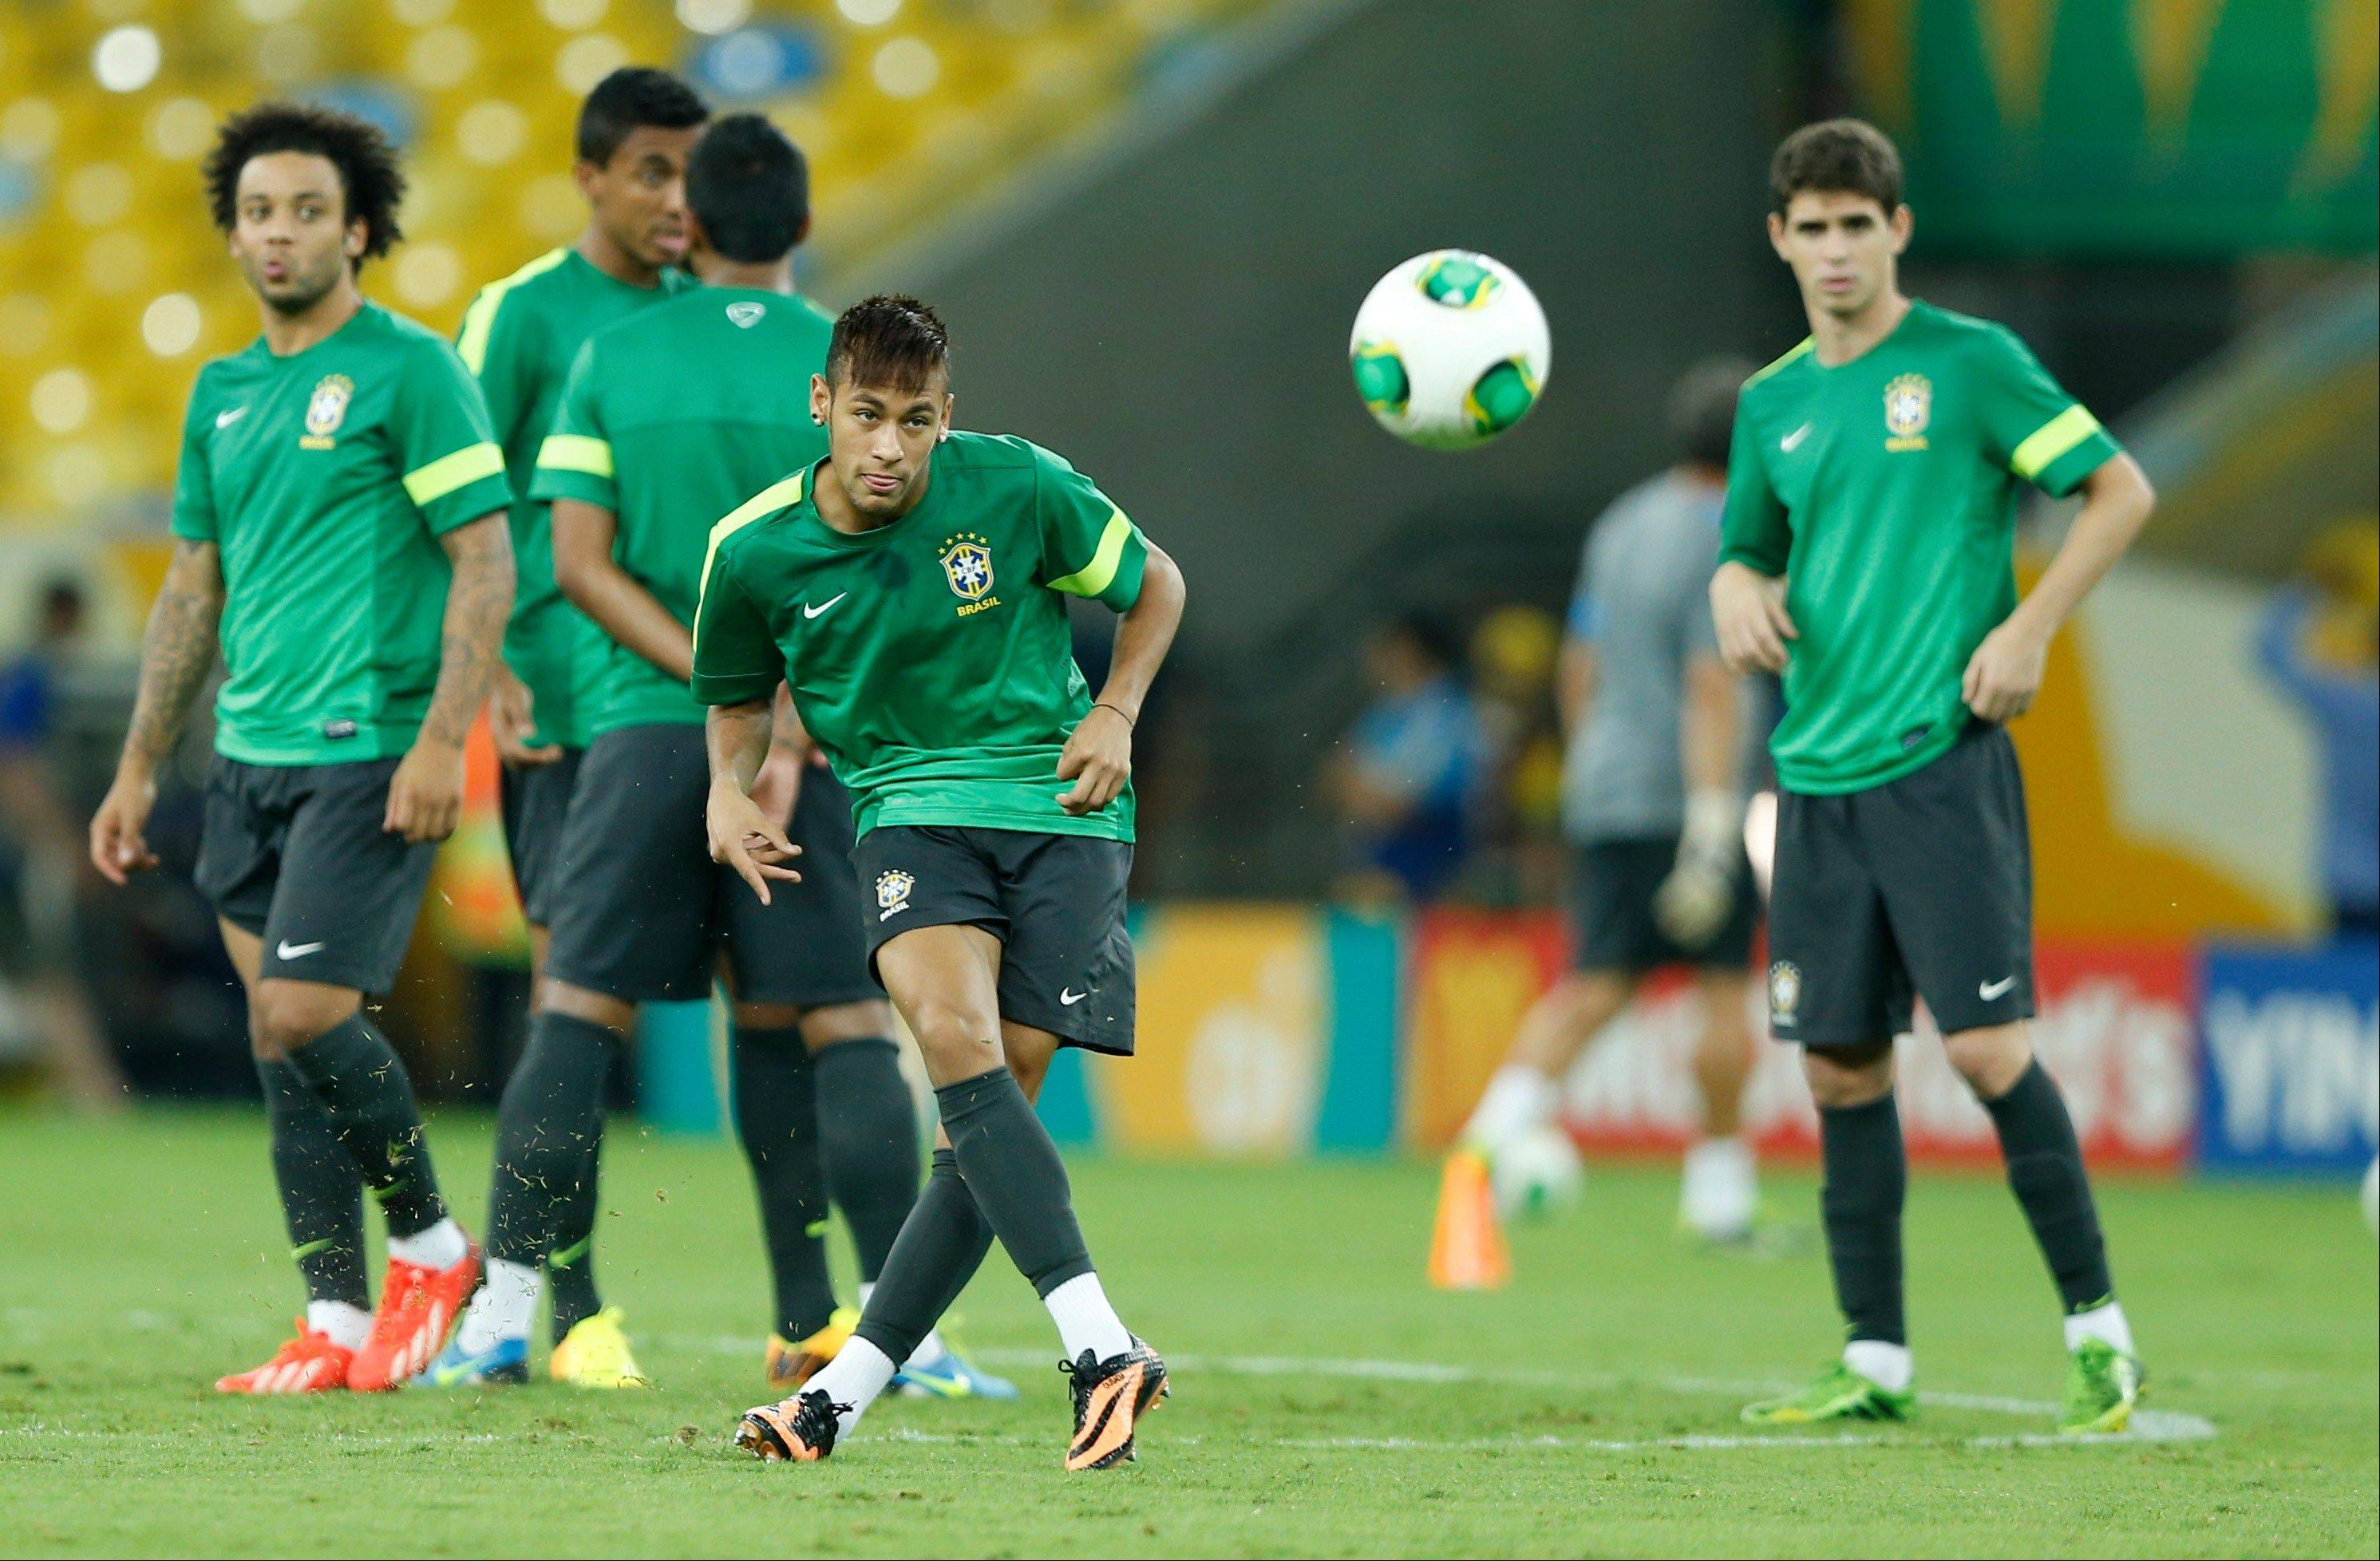 Brazil's Neymar kicks a ball during a training session of Brazil on the eve of the soccer Confederations Cup final match between Brazil and Spain at Maracana stadium in Rio de Janeiro, Brazil, Saturday, June 29, 2013. (AP Photo/Victor R. Caivano)